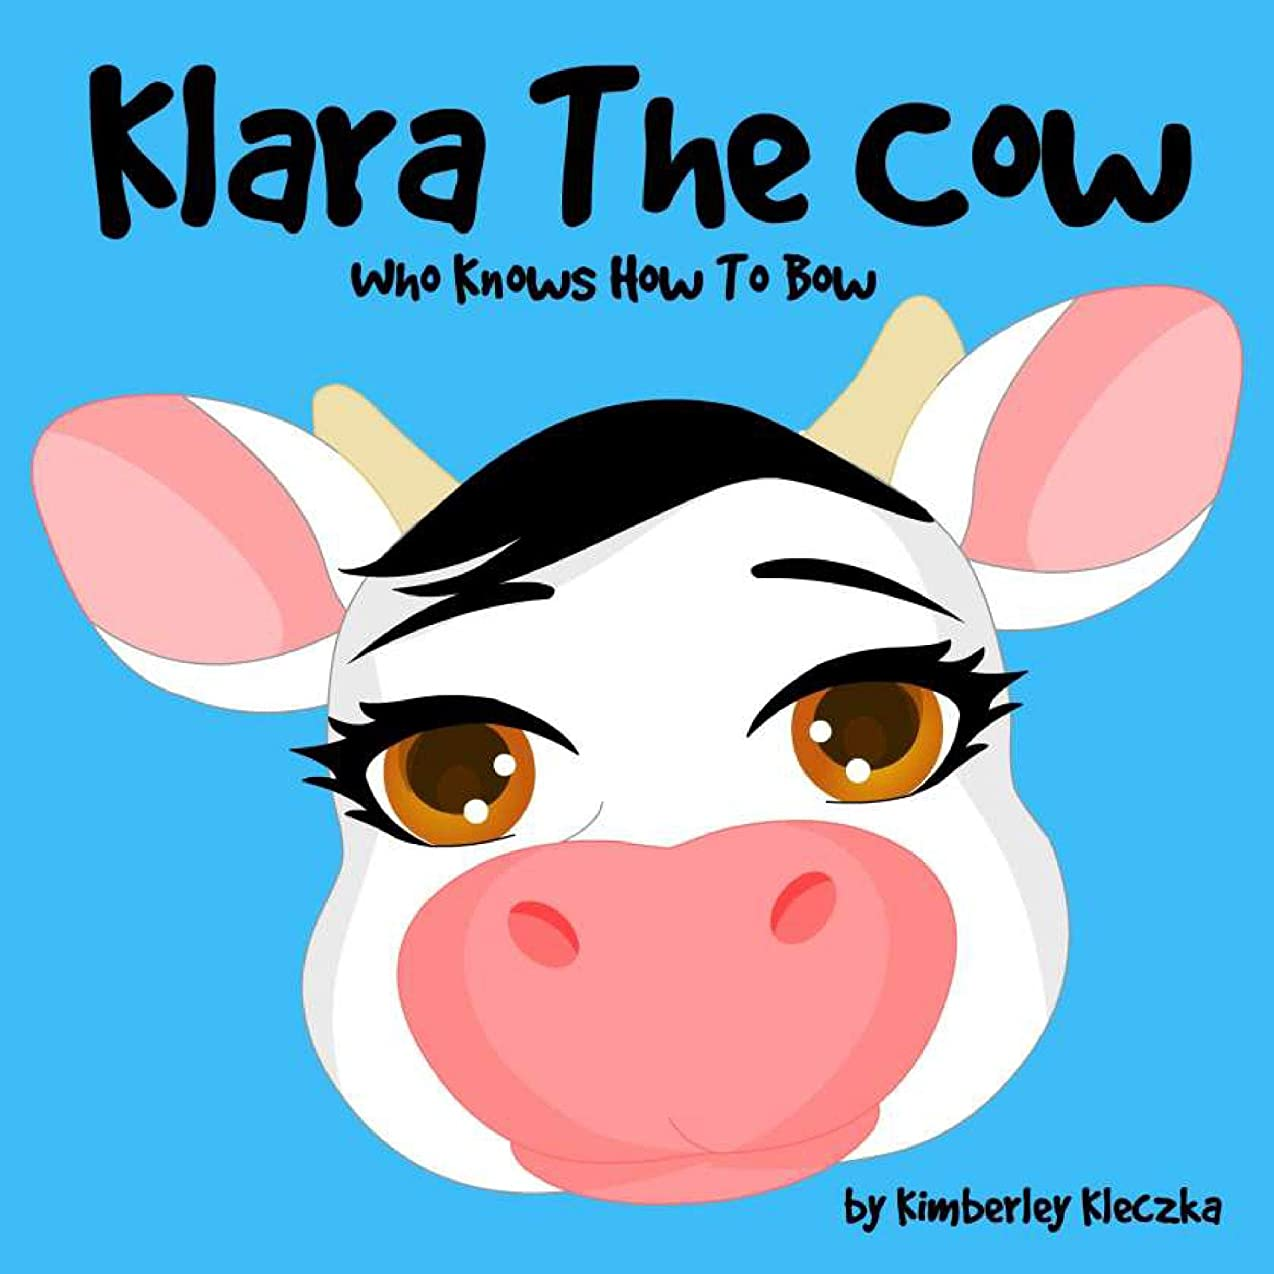 に渡って病者露骨なKlara The Cow Who Knows How To Bow (Friendship Series Book 1) (English Edition)